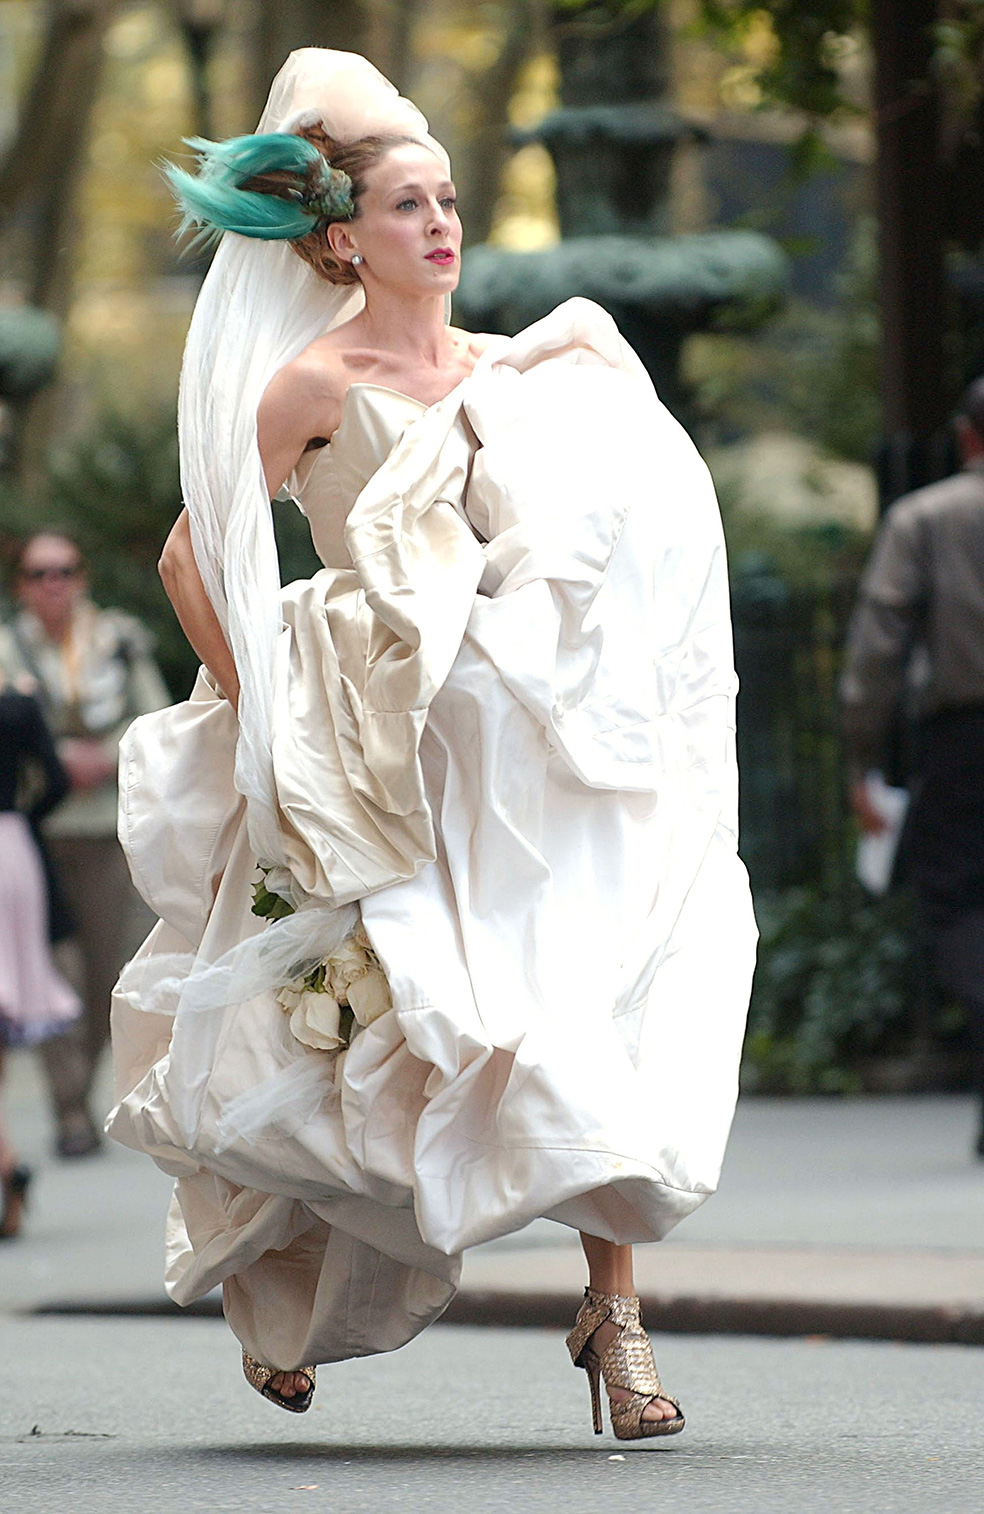 Il wedding dress firmato Vivienne Westwood indossato da Carrie per il suo matrimonio con Mister Big